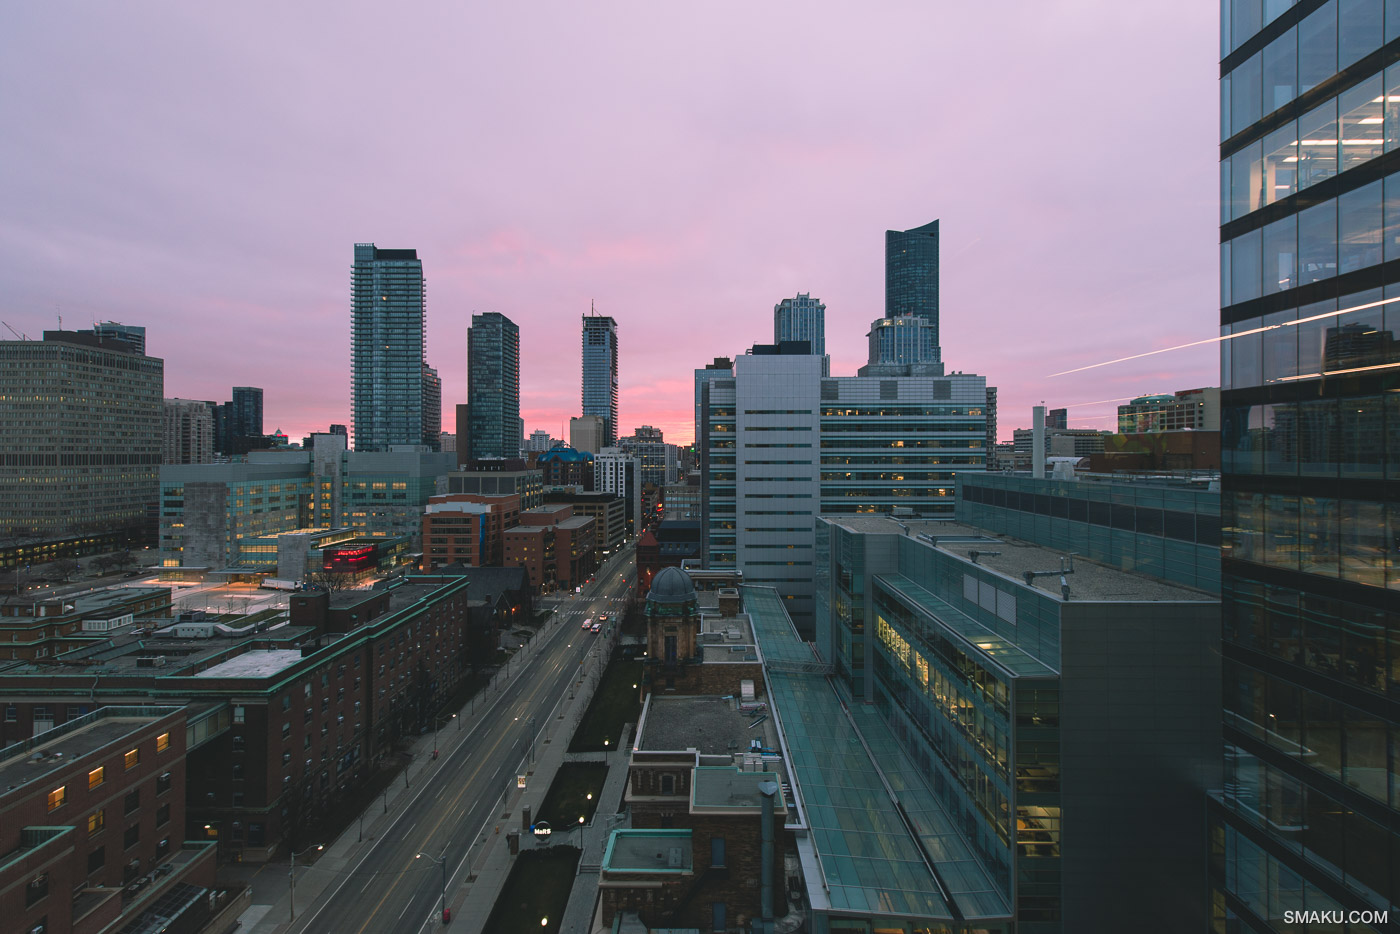 The sunrise as seen from a window of Facebook Canada.